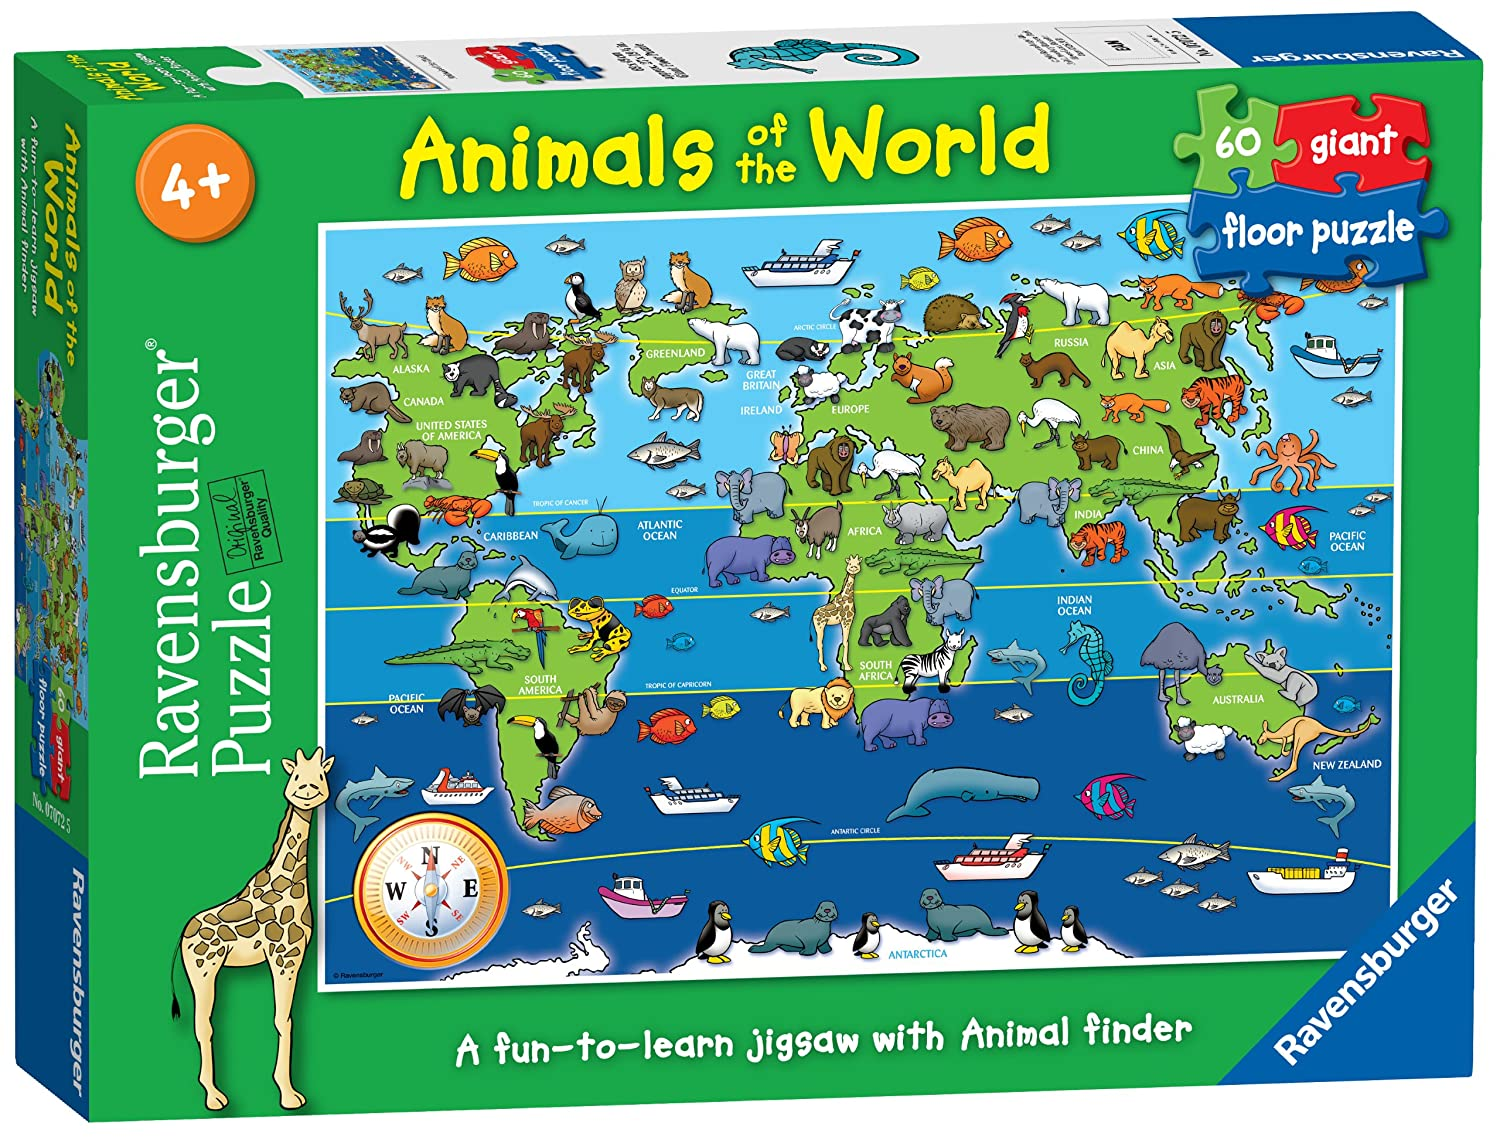 Ravensburger 7072 animals of the world giant floor jigsaw puzzle ravensburger 7072 animals of the world giant floor jigsaw puzzle 60 pieces ravensburger amazon toys games gumiabroncs Images